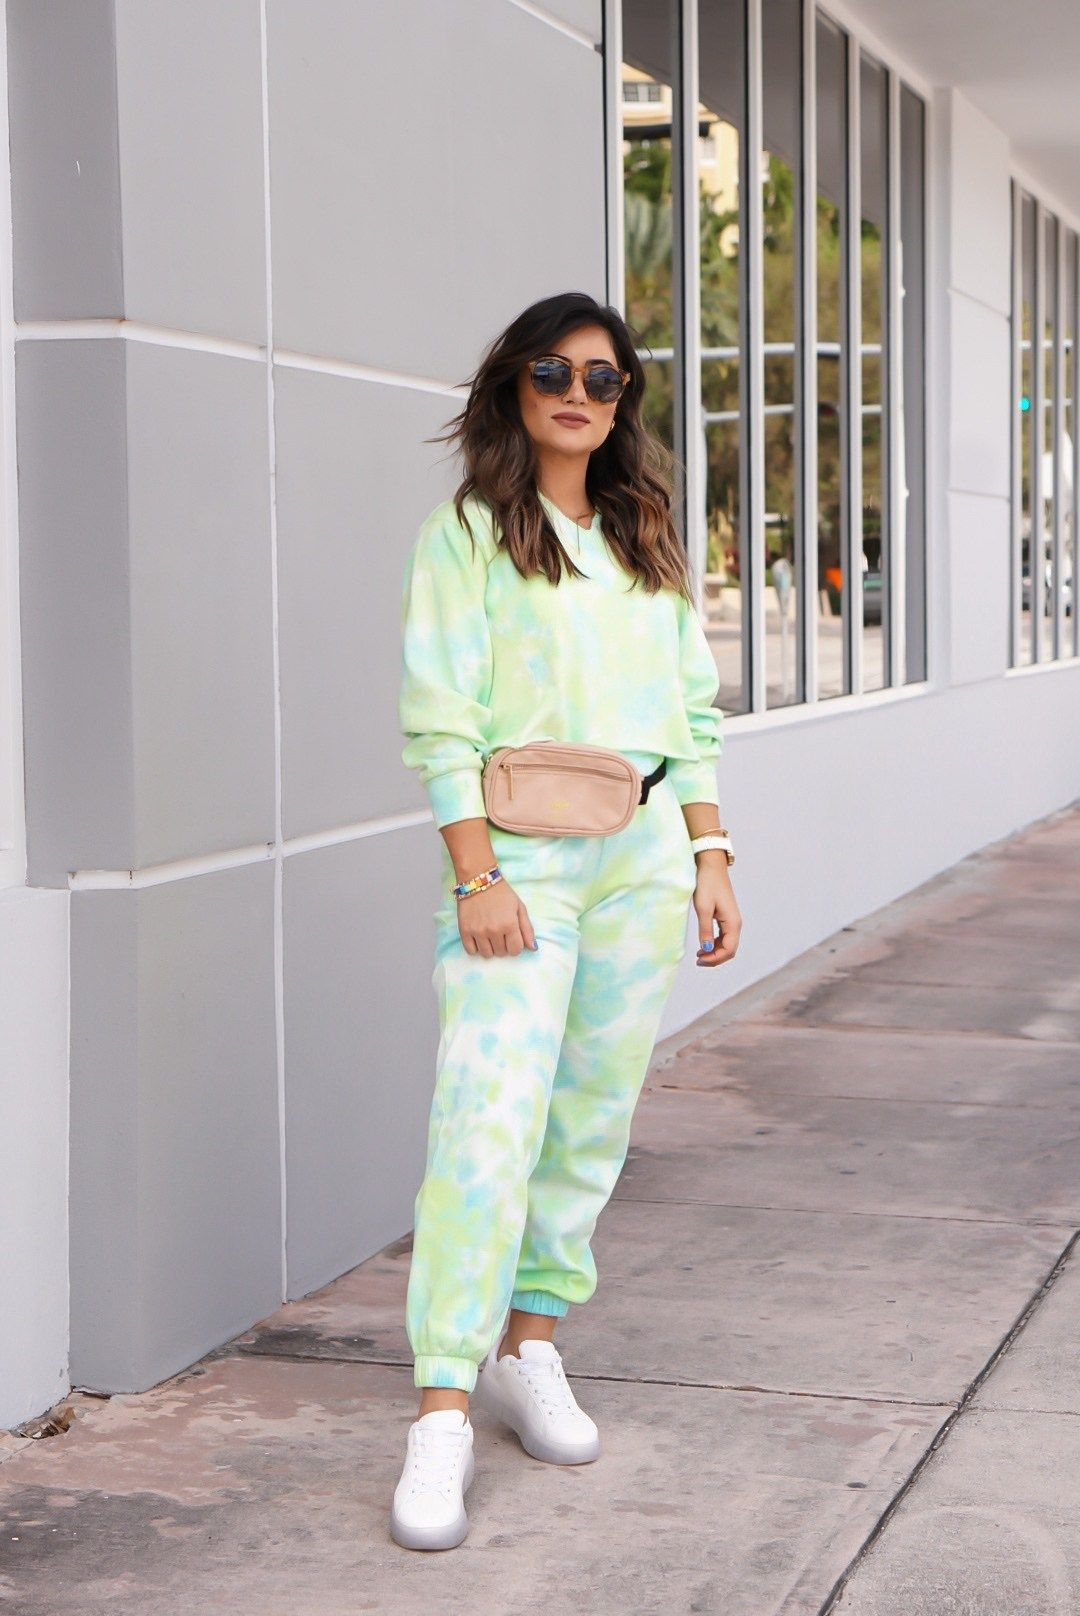 how to tie dye sweatpants step by step